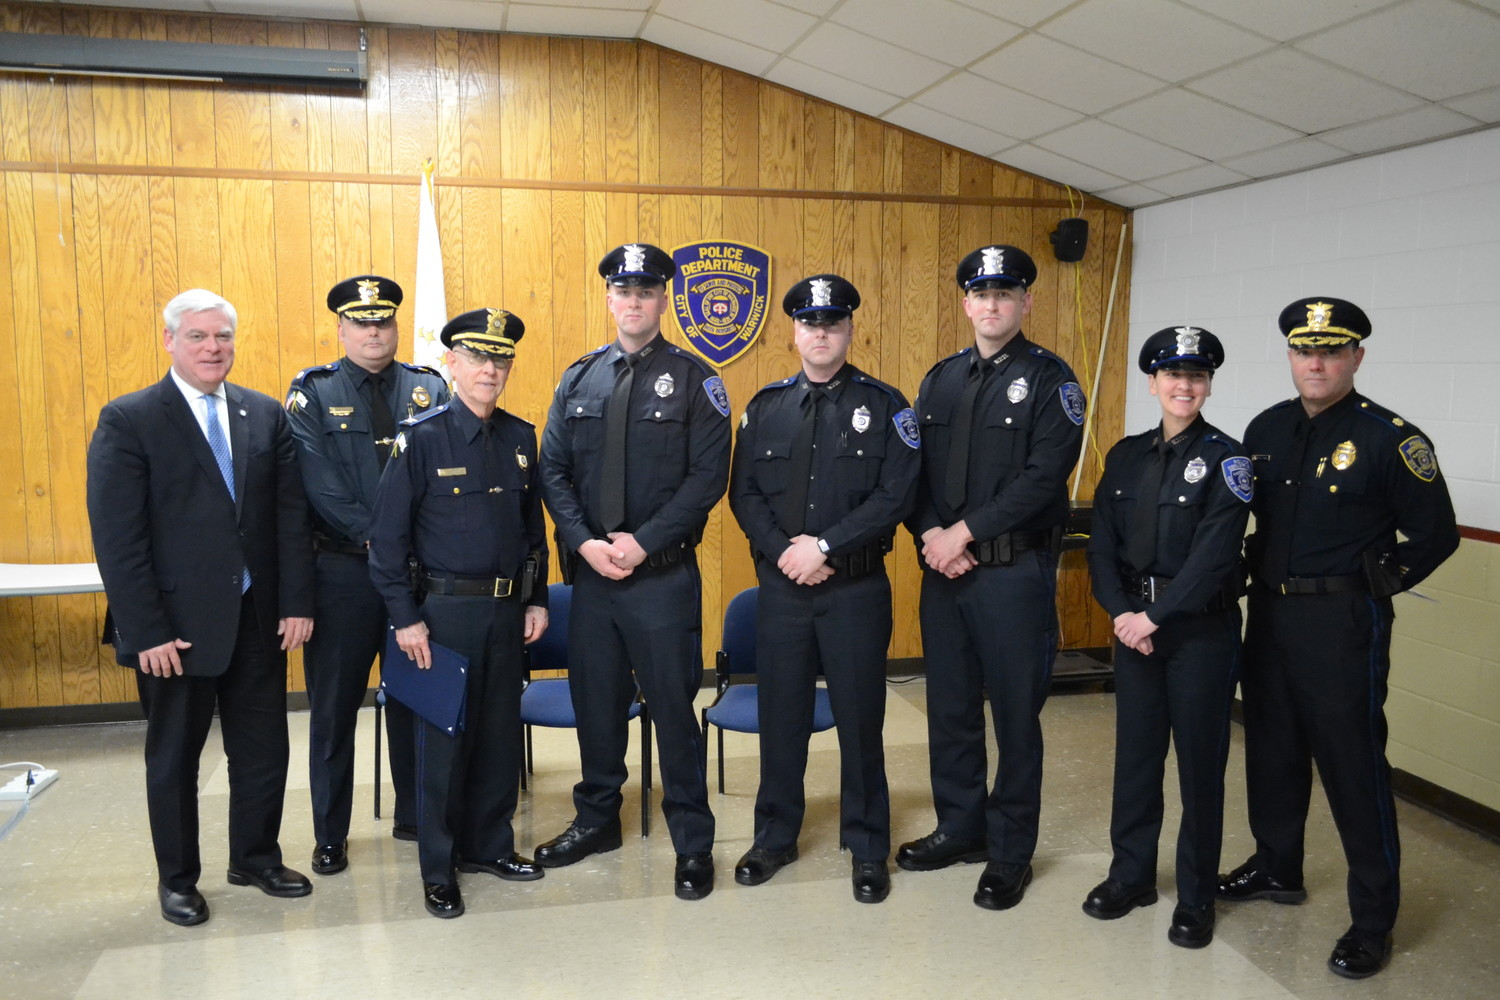 NEW COPS ON THE BLOCK: Mayor Scott Avedisian joins Major Rick Rathbun, Colonel Stephen McCartney, officers Randy Bell, Justin Martin, Jonathan Burn and Karen Haarr, and Major Brad Connor.